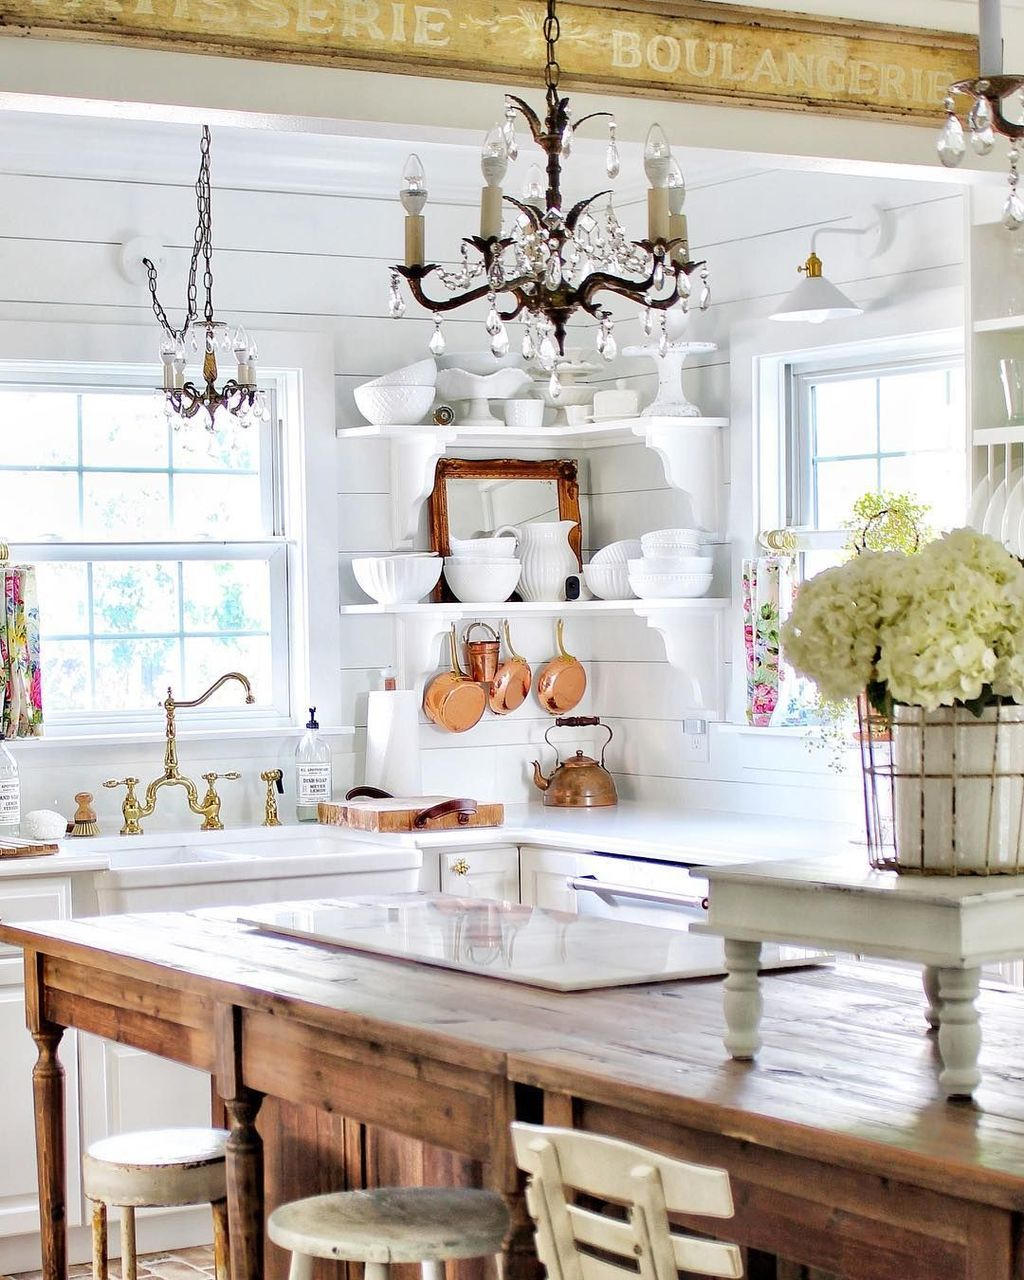 Inspiring Country Kitchen Decor Ideas You Should Copy 21